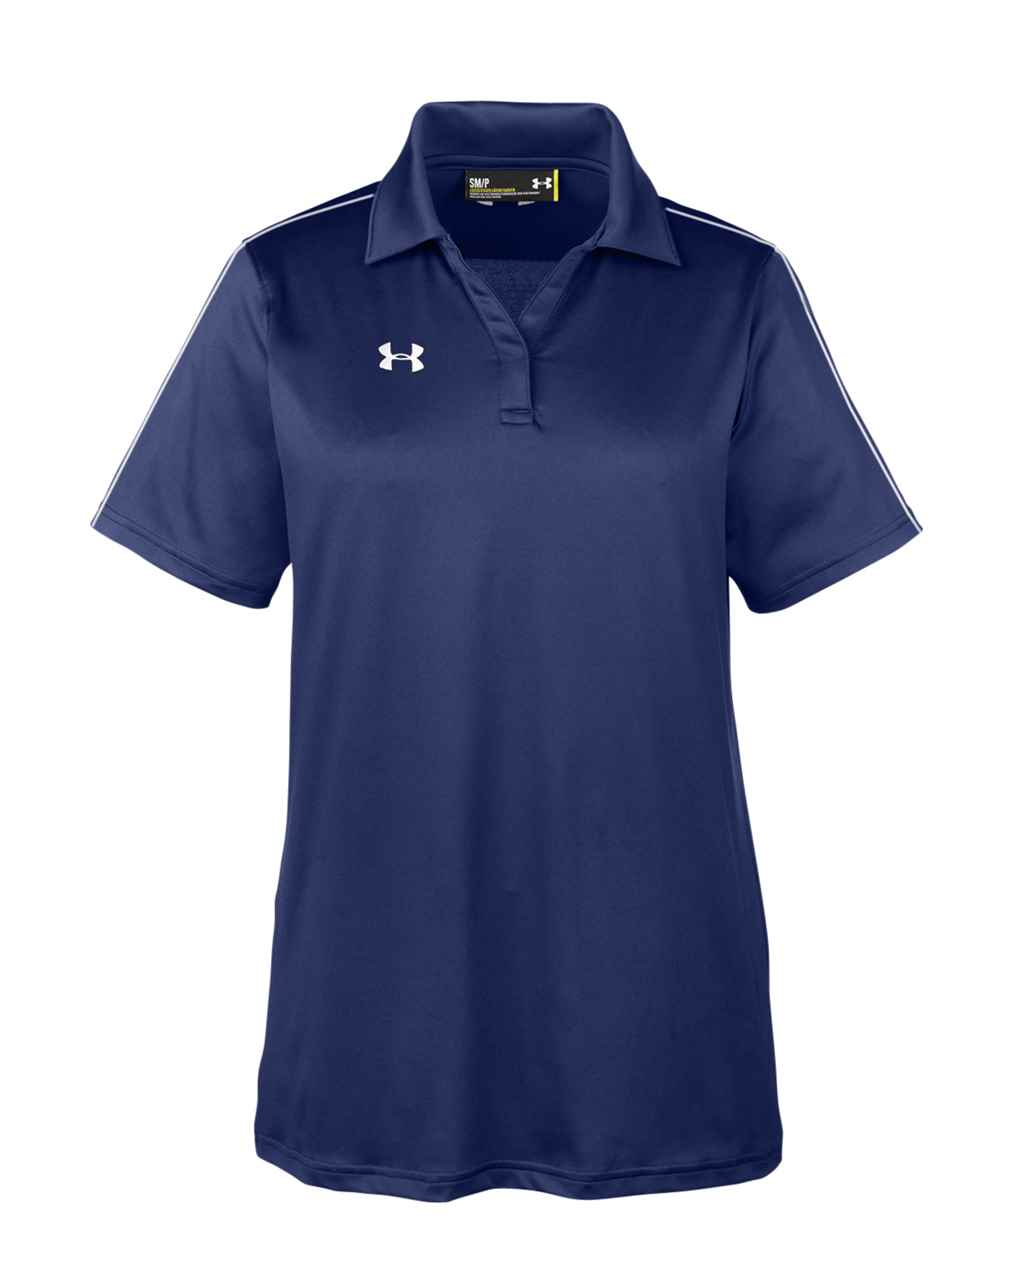 Picture of UNDER ARMOUR Ladies' Corp Tech Polo